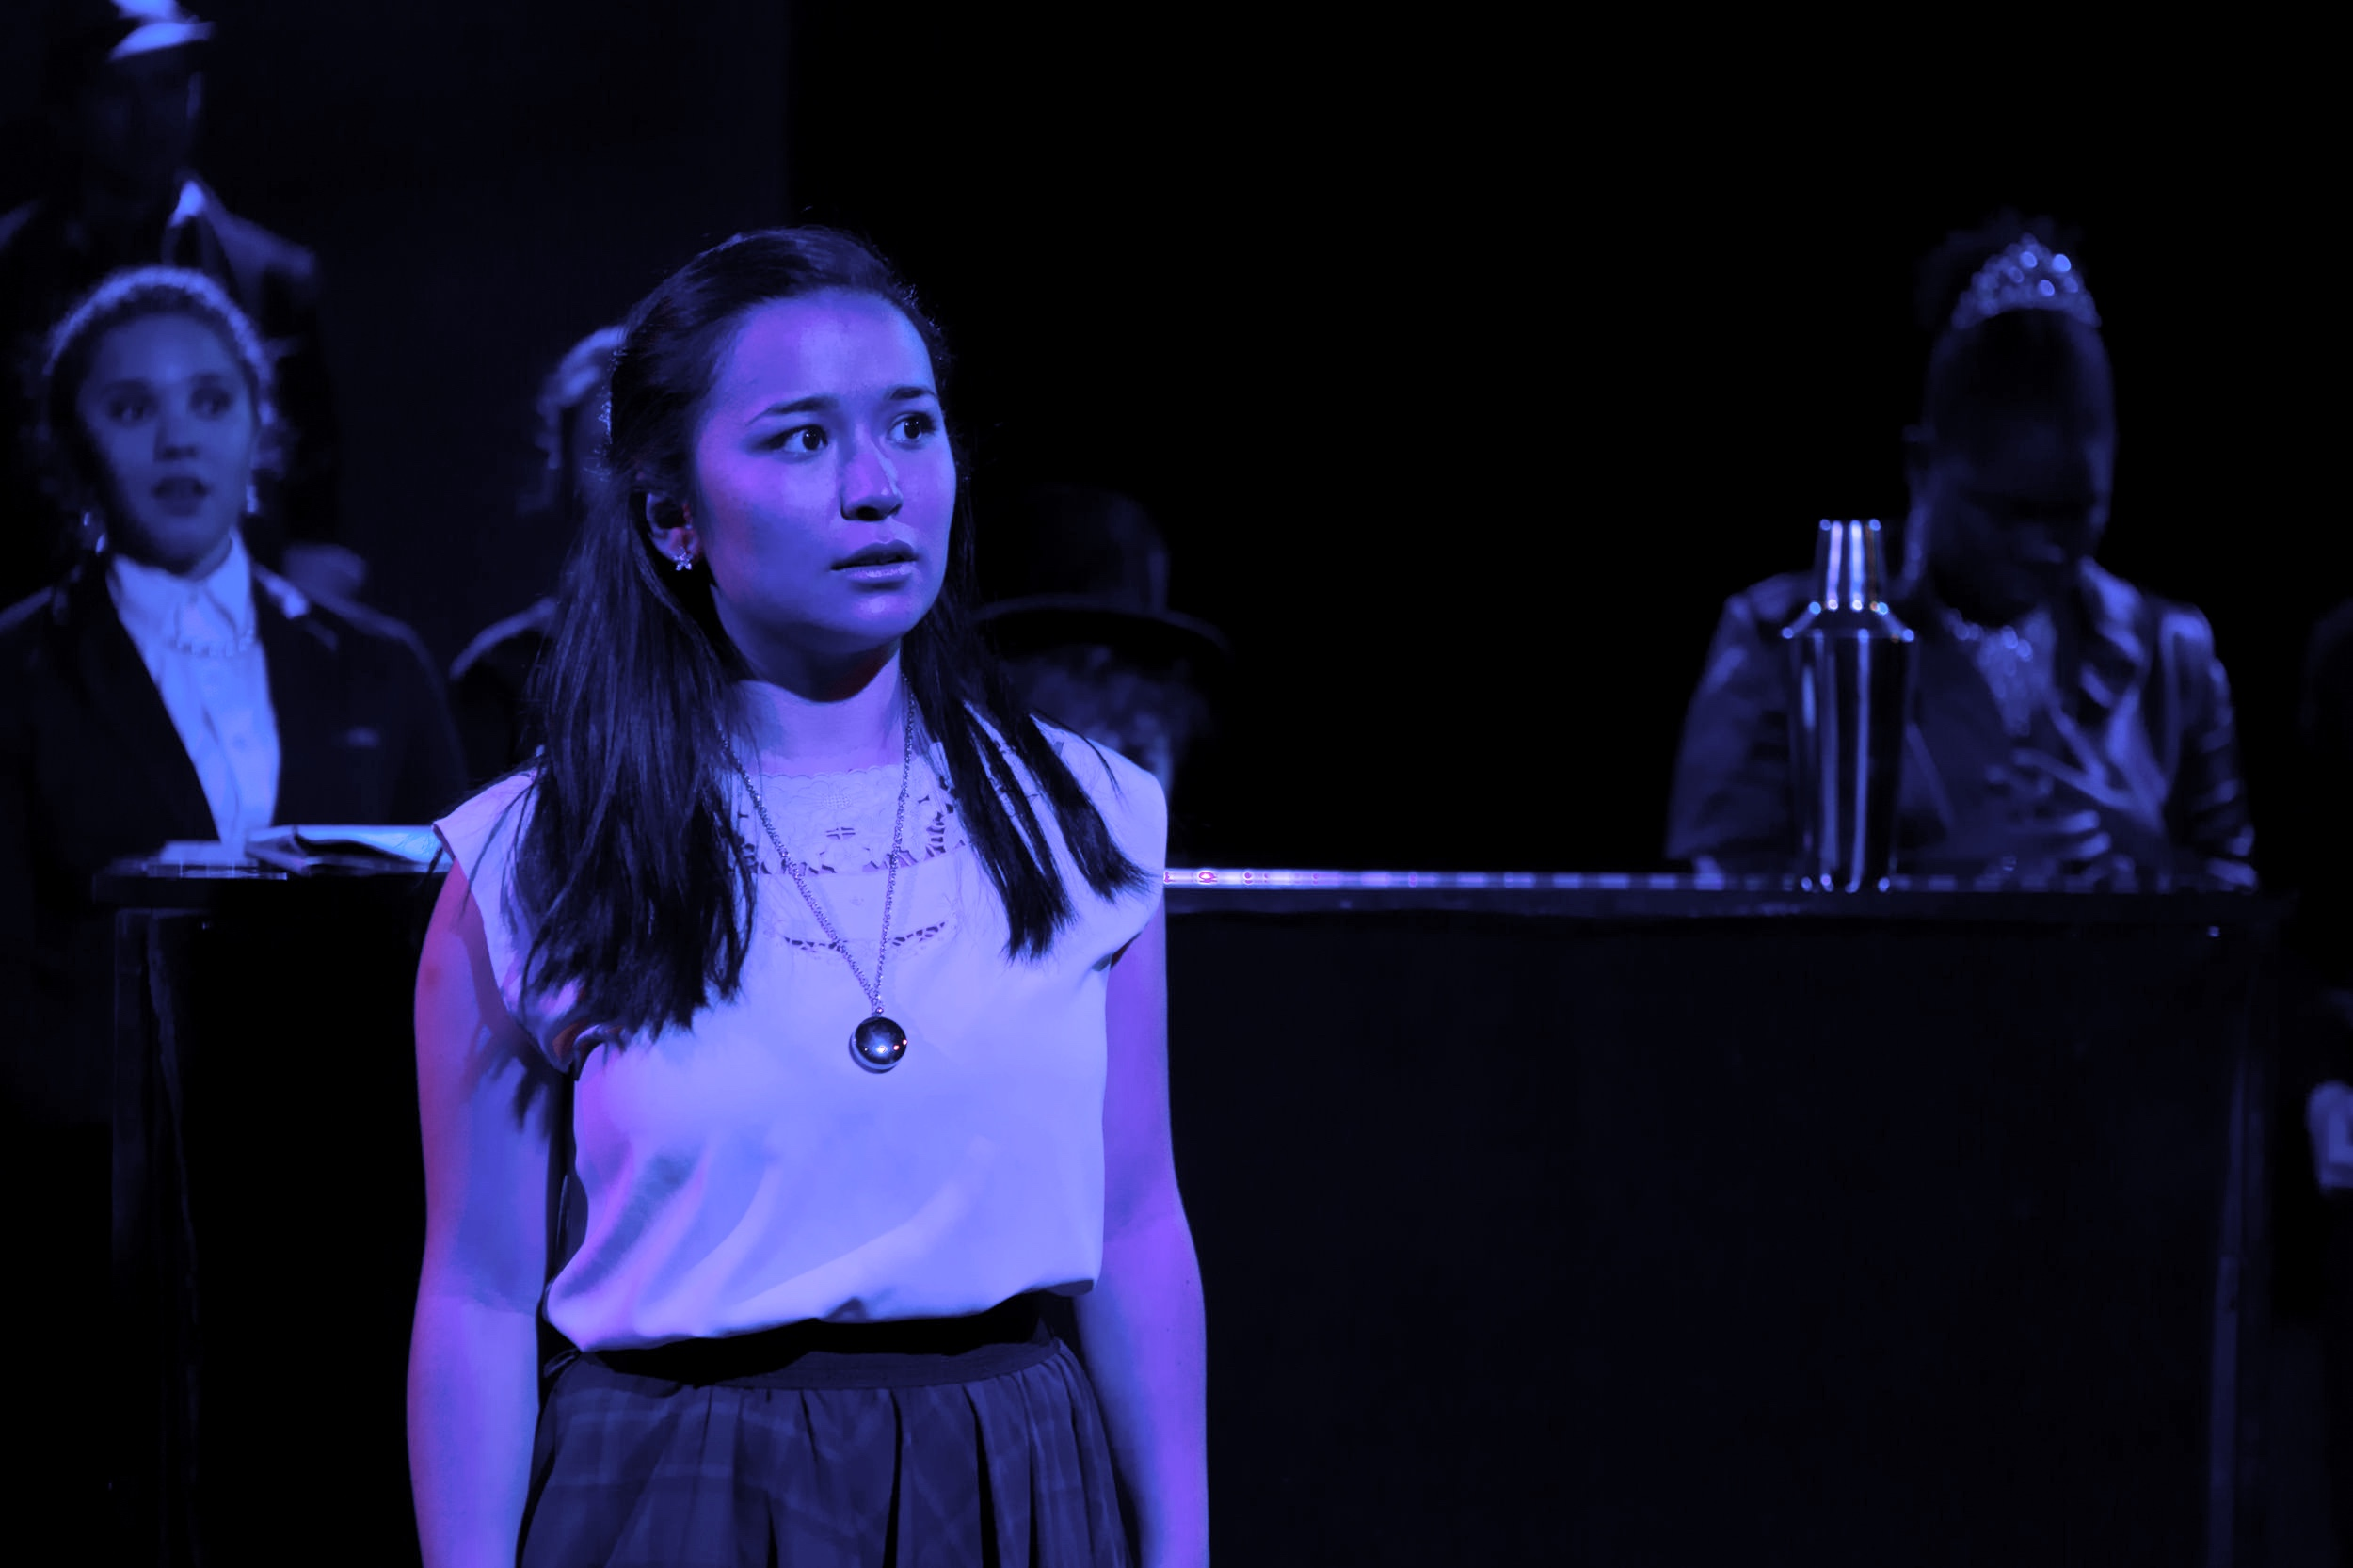 ALL'S WELL THAT ENDS WELL - by William Shakespeare, directed by Owen HorsleyA Shakespearian problem play about a girl's journey to win over the love of her life. (Stella Adler Studio of Acting)Helena, young, passionate, and fiercely smart.(Click here for stills.)